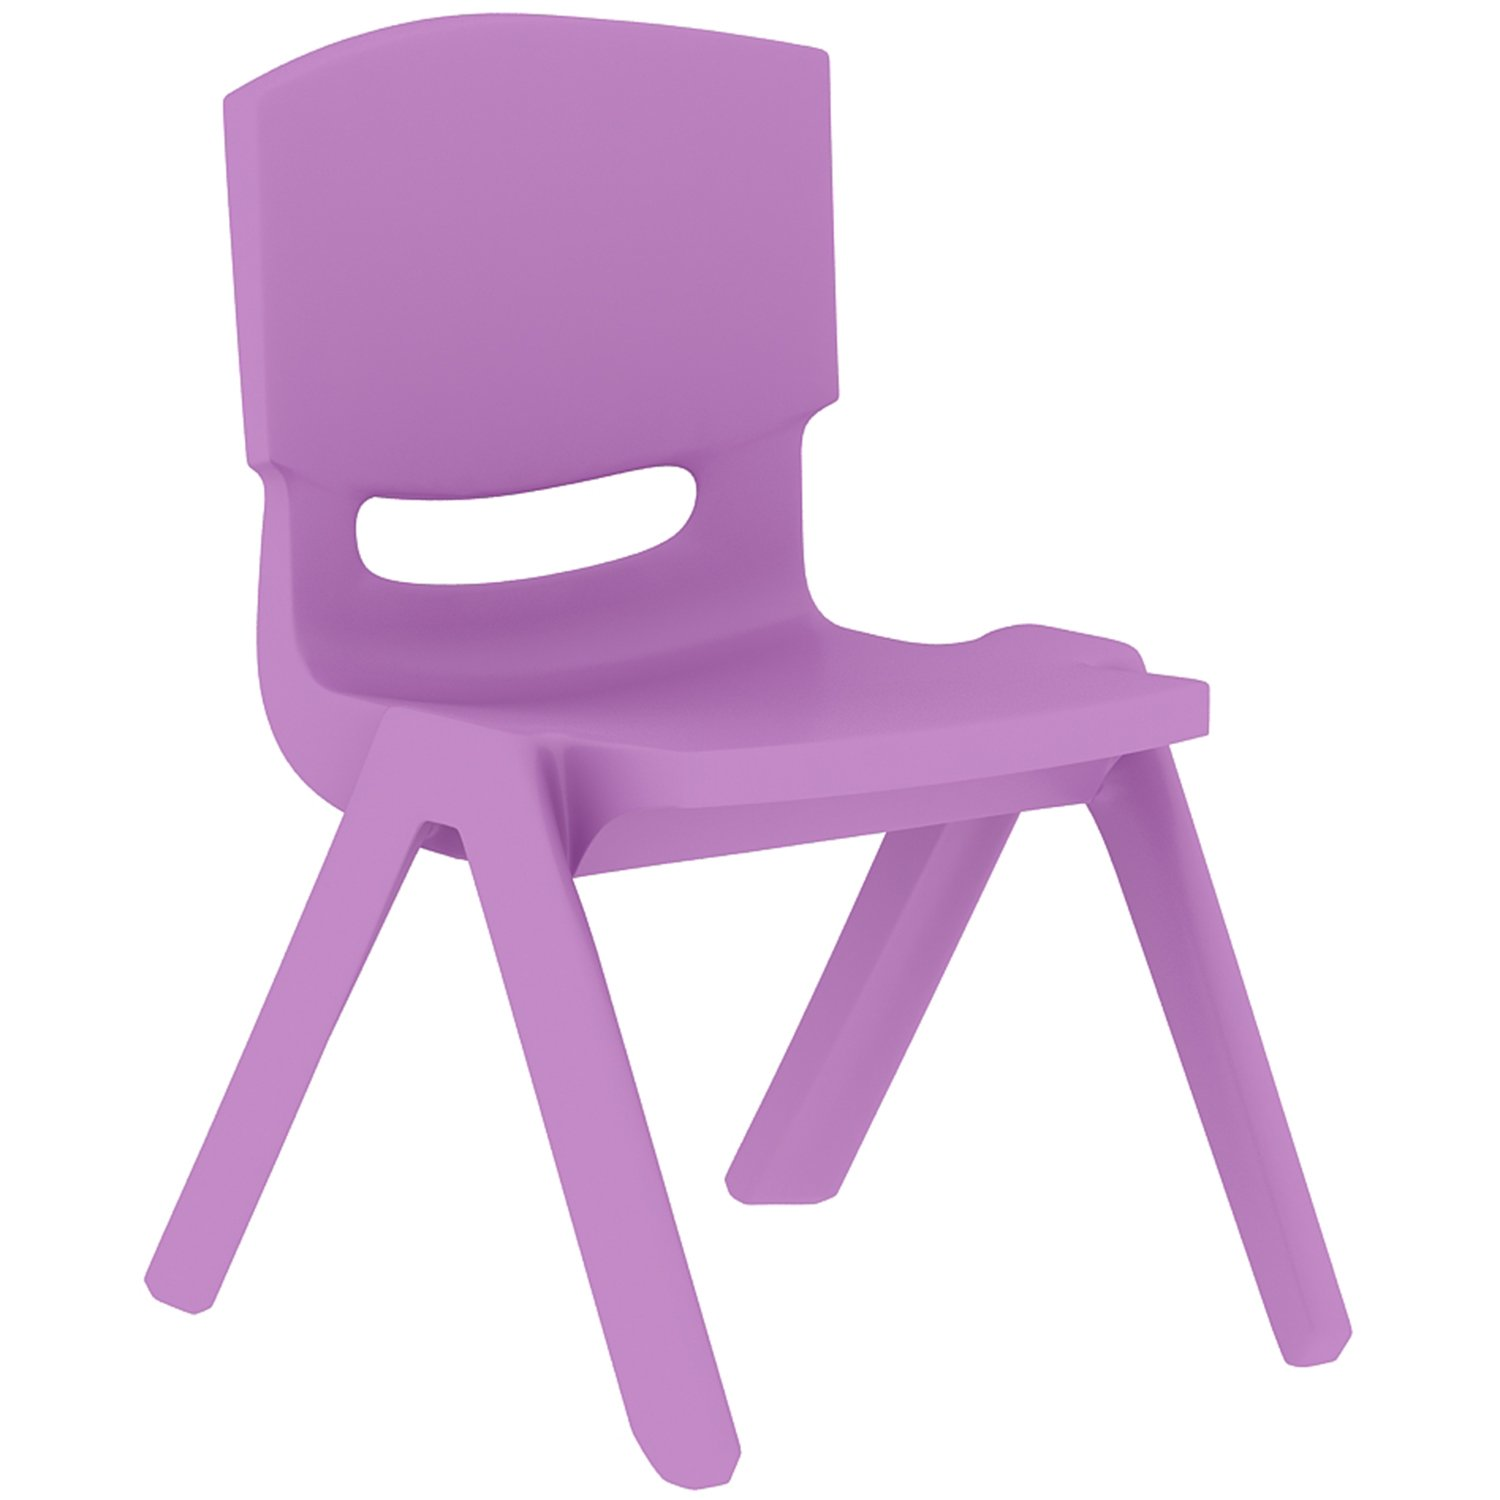 2xhome - Set of Four (4) - Purple - Kids Size Plastic Side Chair 10'' Seat Height Purple Childs Chair Childrens Room School Chairs No Arm Arms Armless Molded Plastic Seat Stackable by 2xhome (Image #2)